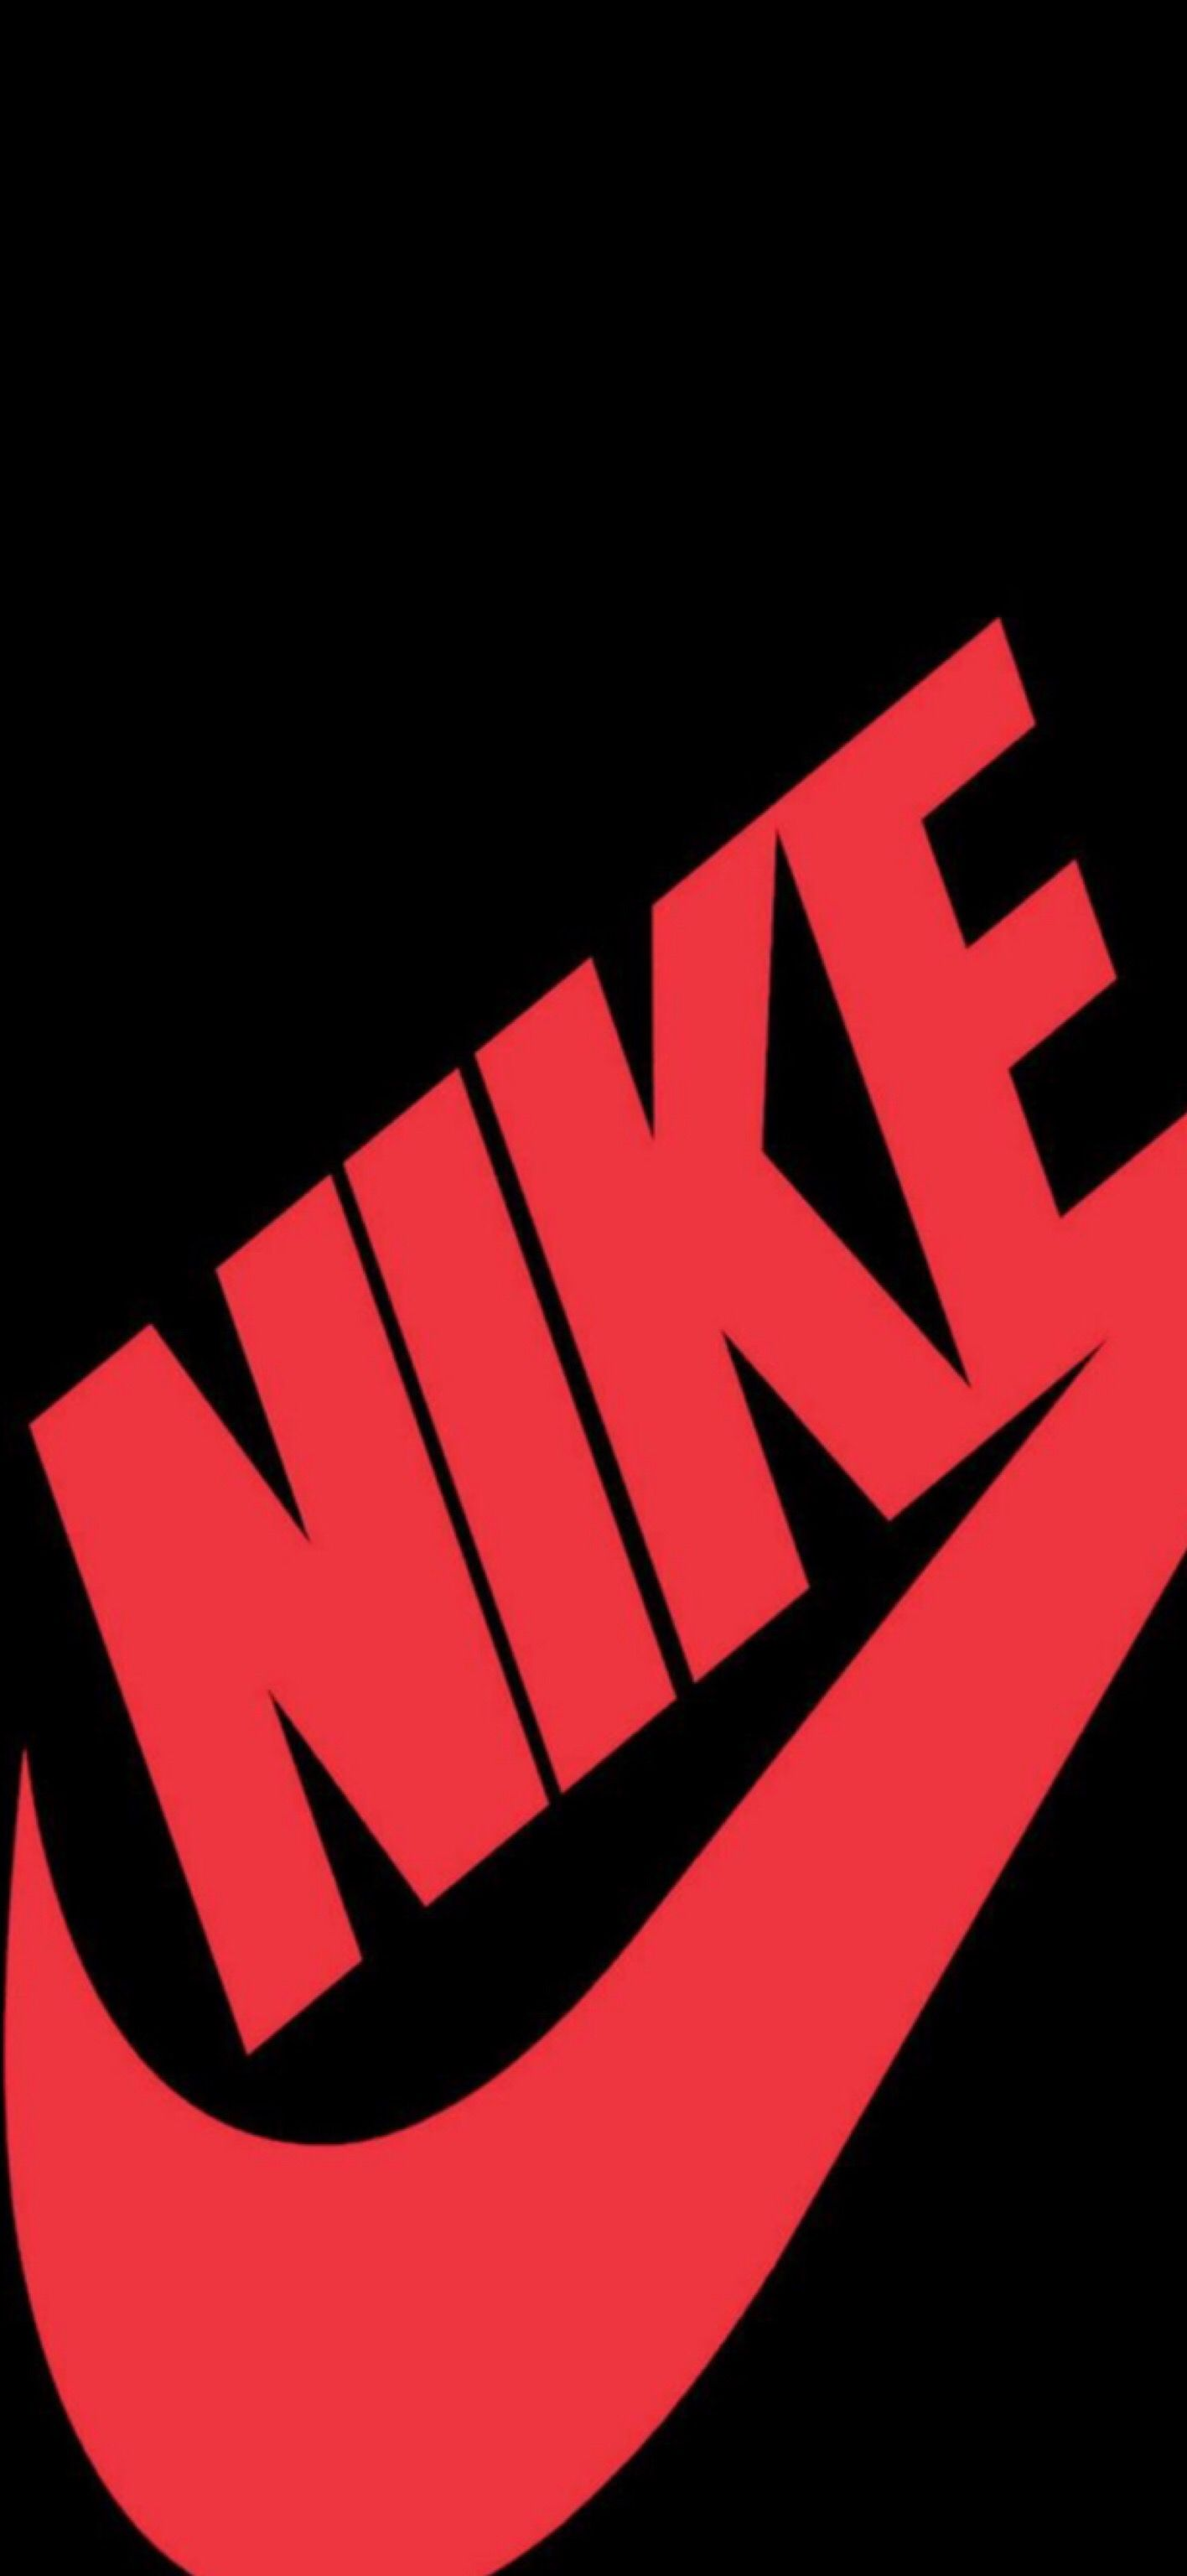 Wallpaper Iphone X Nike Logo Nike Logo Wallpapers Nike Wallpaper Iphone Nike Wallpaper